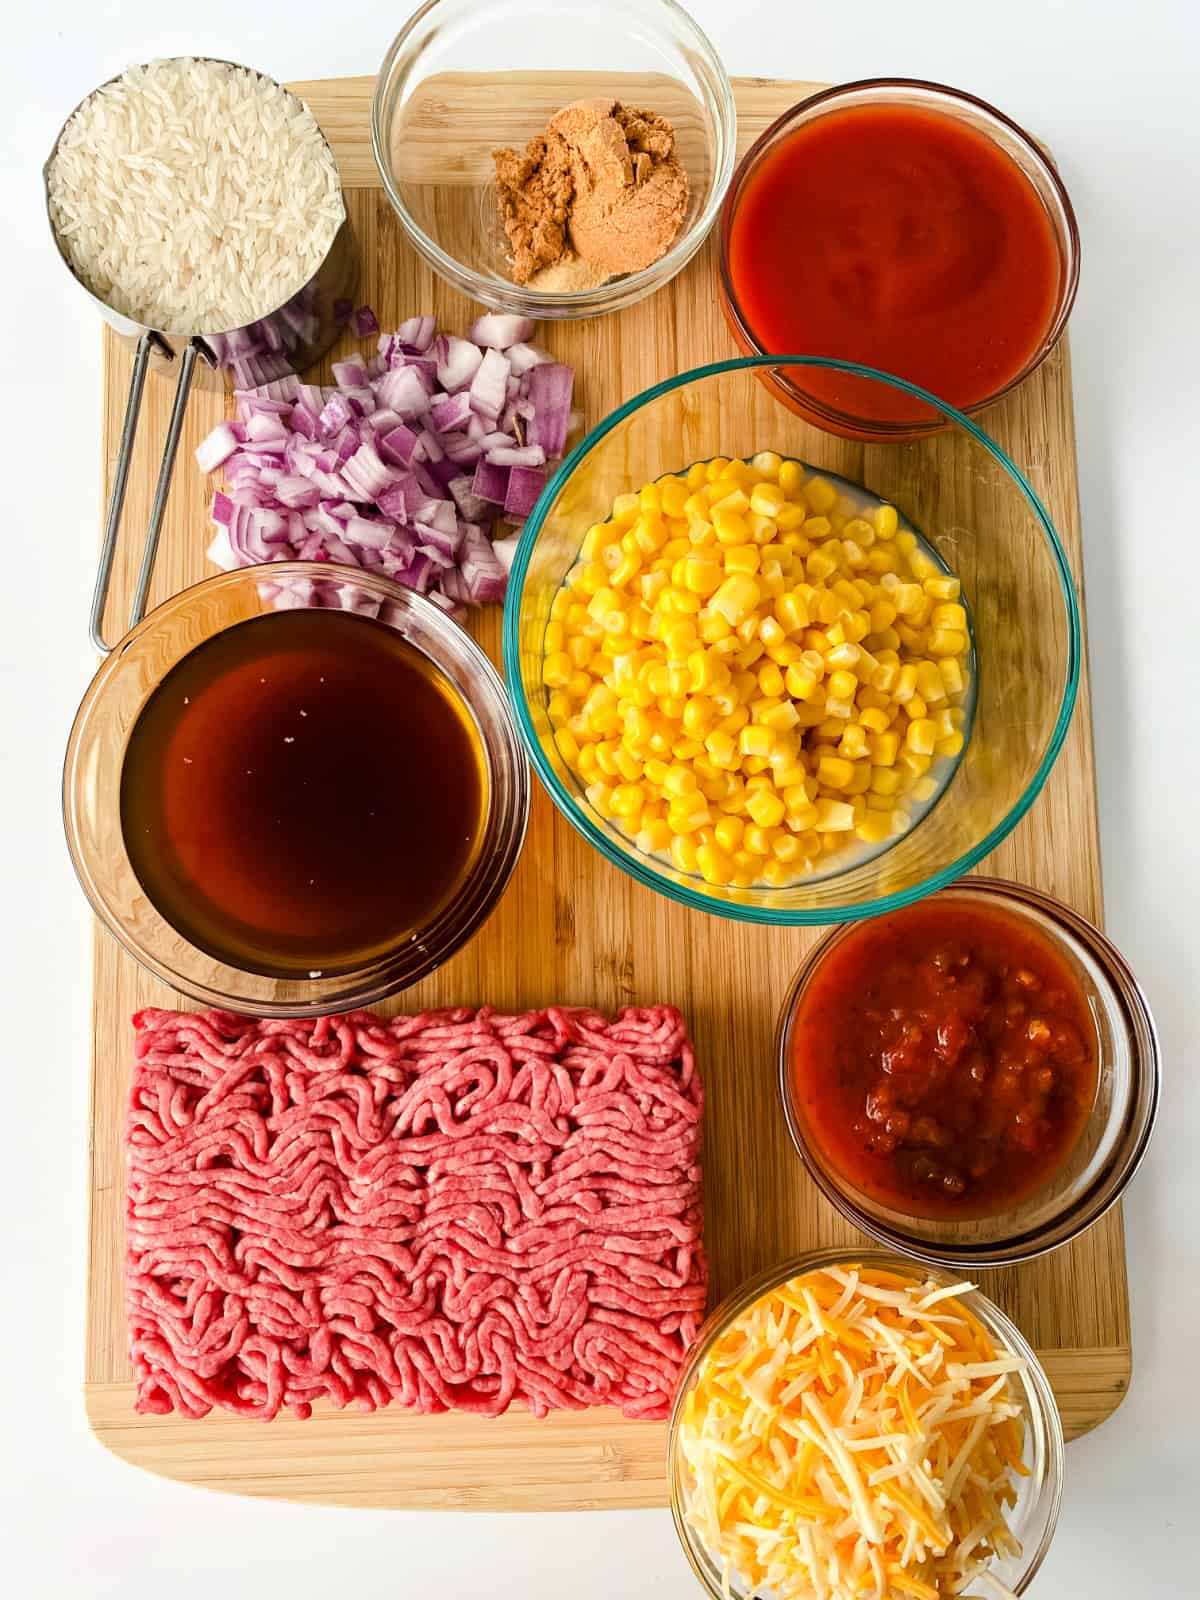 Ground beef, beef broth, red onion, corn, rice, cheese, salsa, and seasonings on a wooden cutting board.